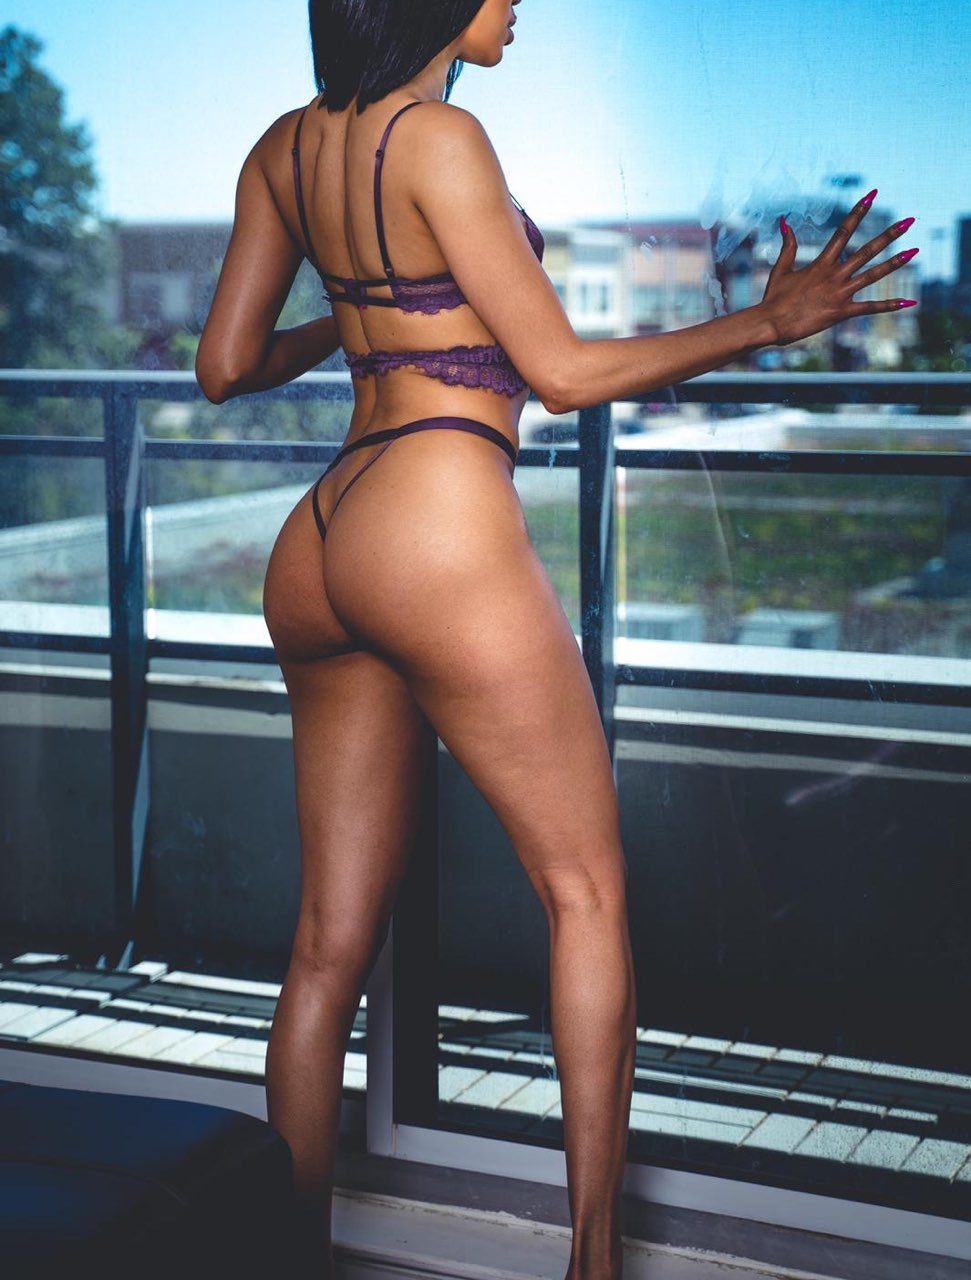 💜Bad Girls Make You Feel Like Heaven!💜Fire Up Your Friday💜Cum Get It!💜BLONDIE'S!!💜(647)462-8888💜